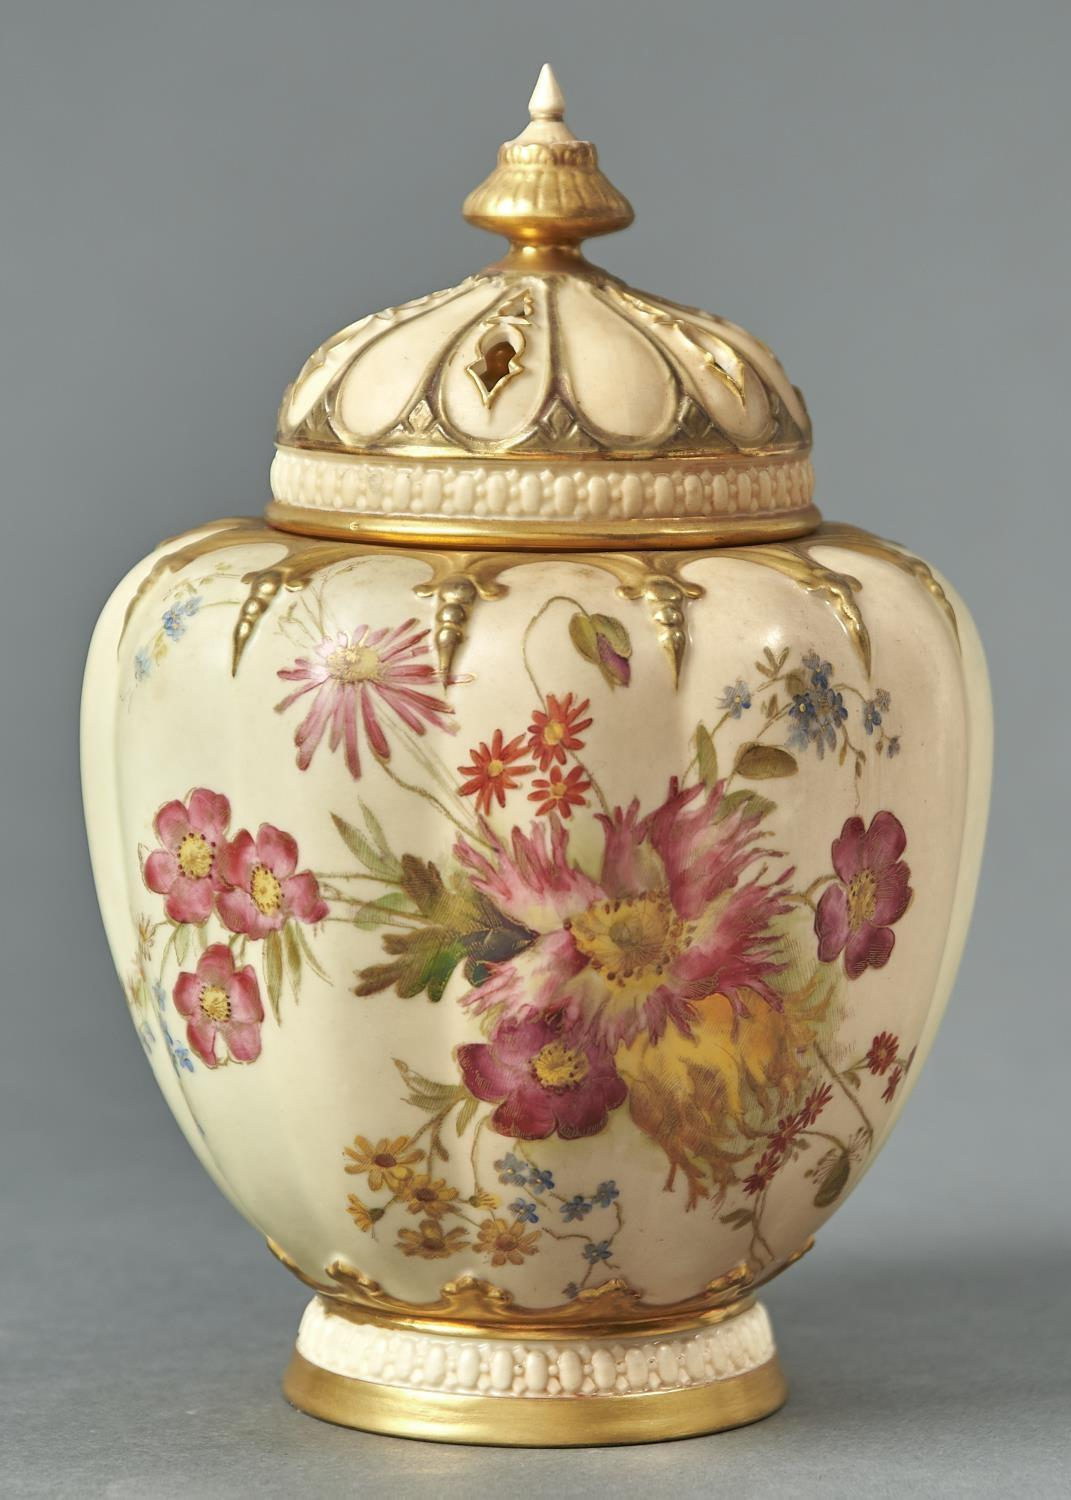 A ROYAL WORCESTER STUART ROSE JAR, COVER AND INNER COVER, 1903,  PRINTED AND PAINTED WITH